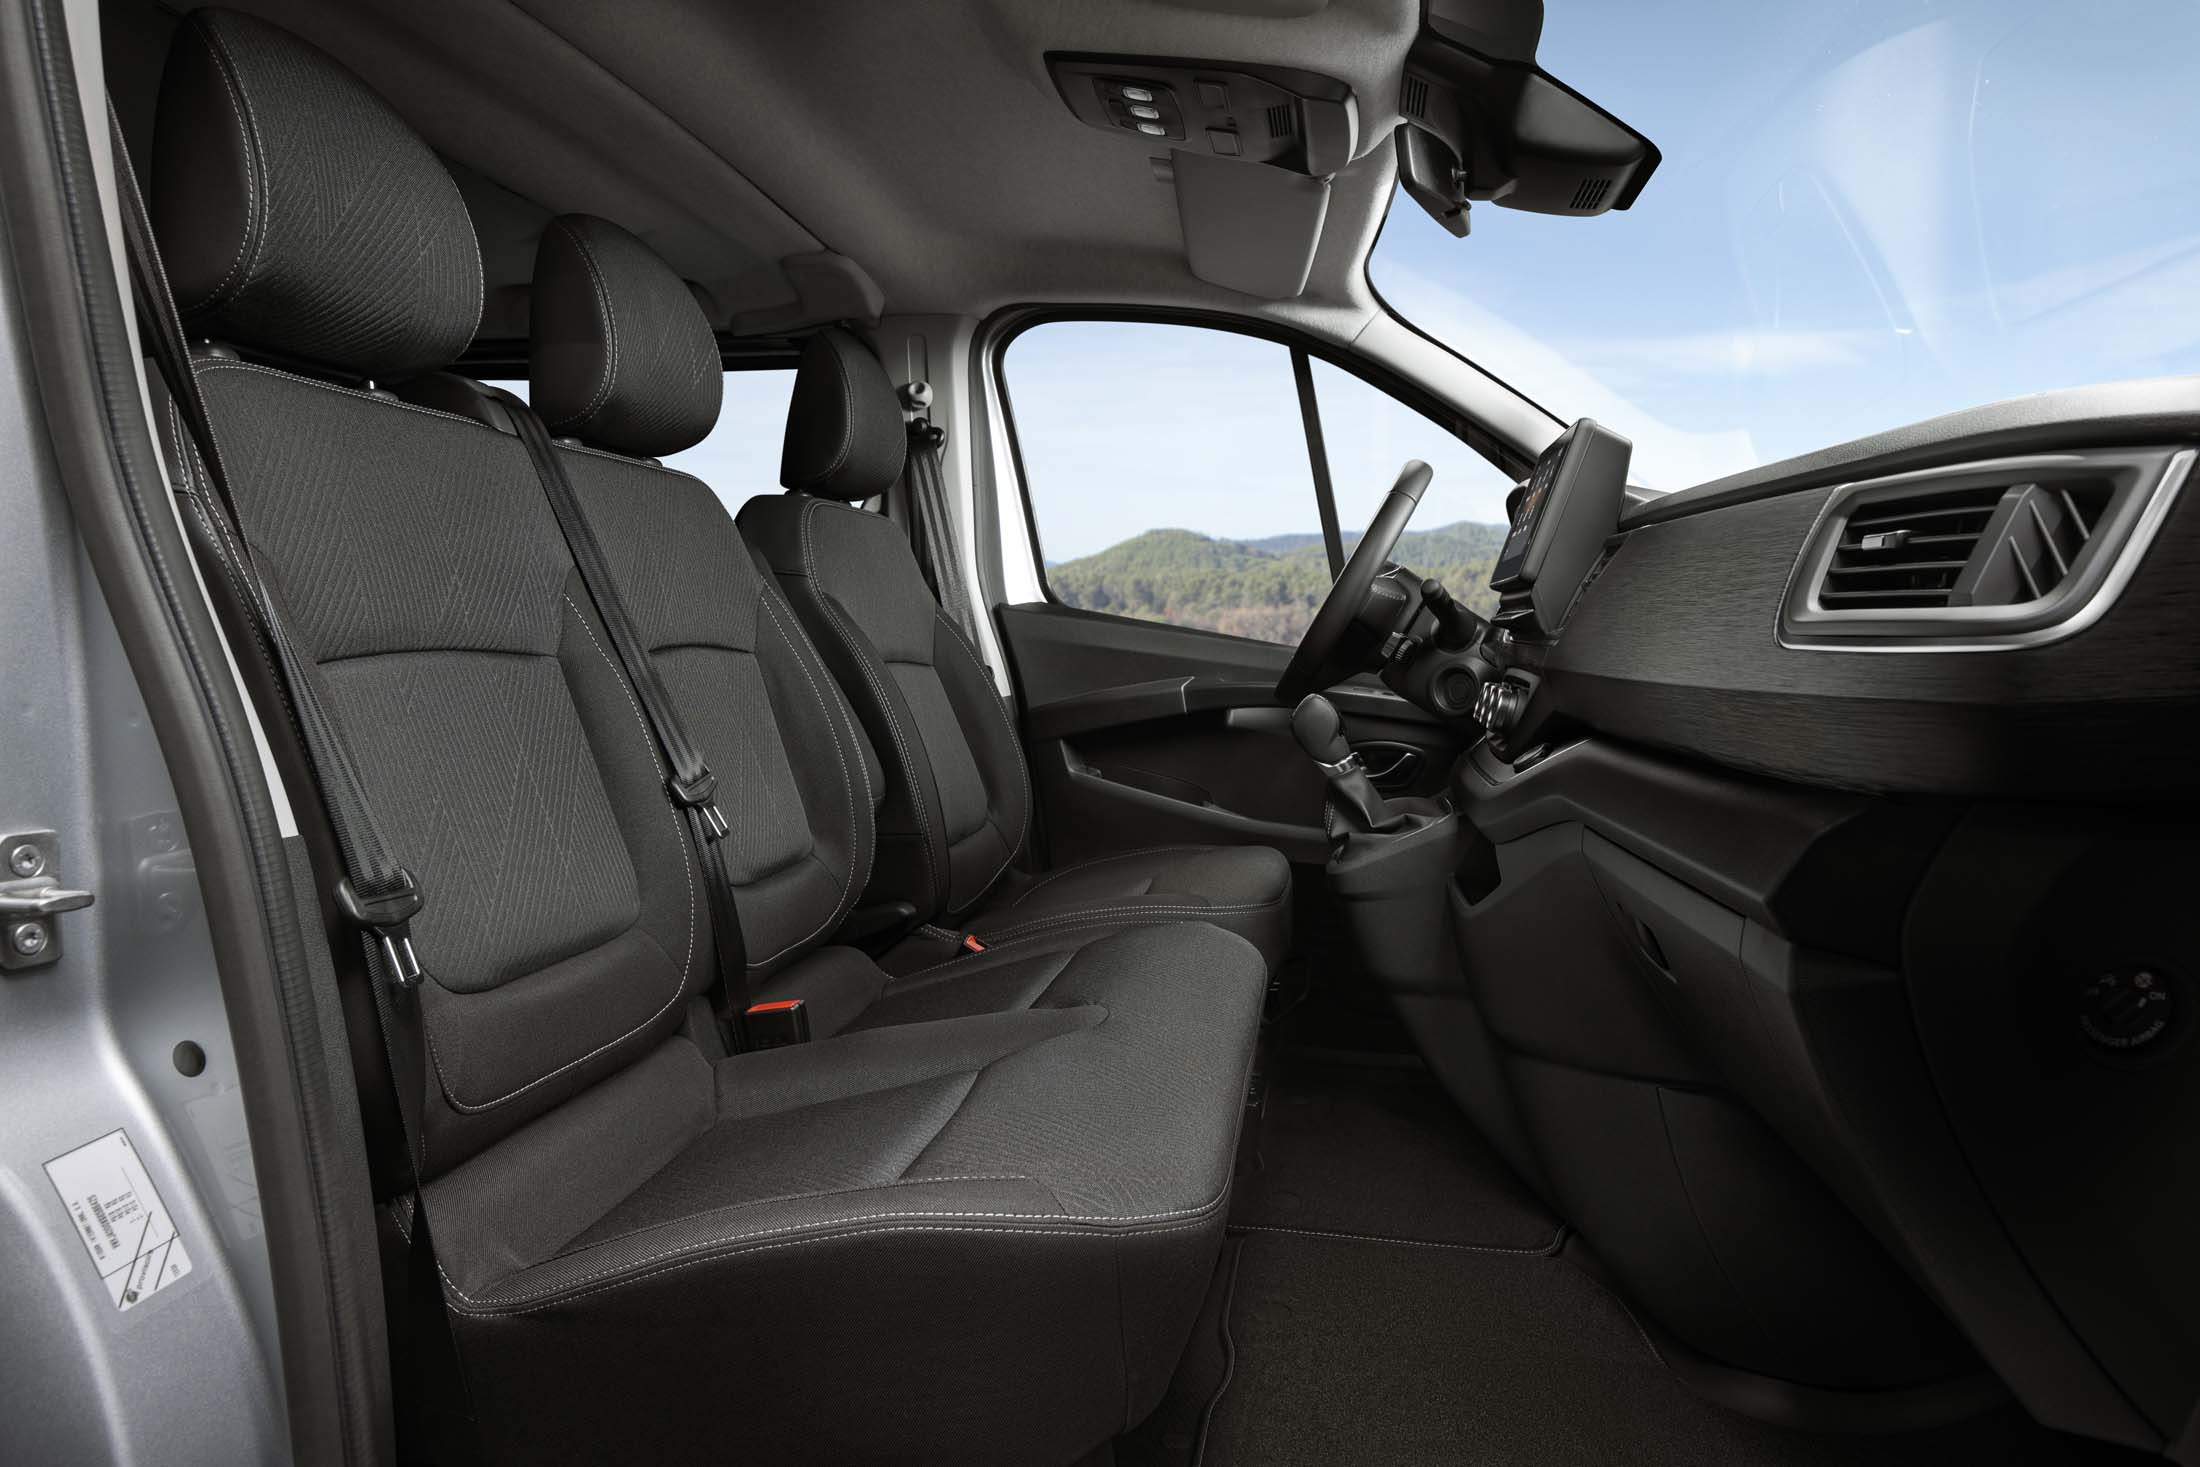 New NV300 Combi Interior Front Cabin 1